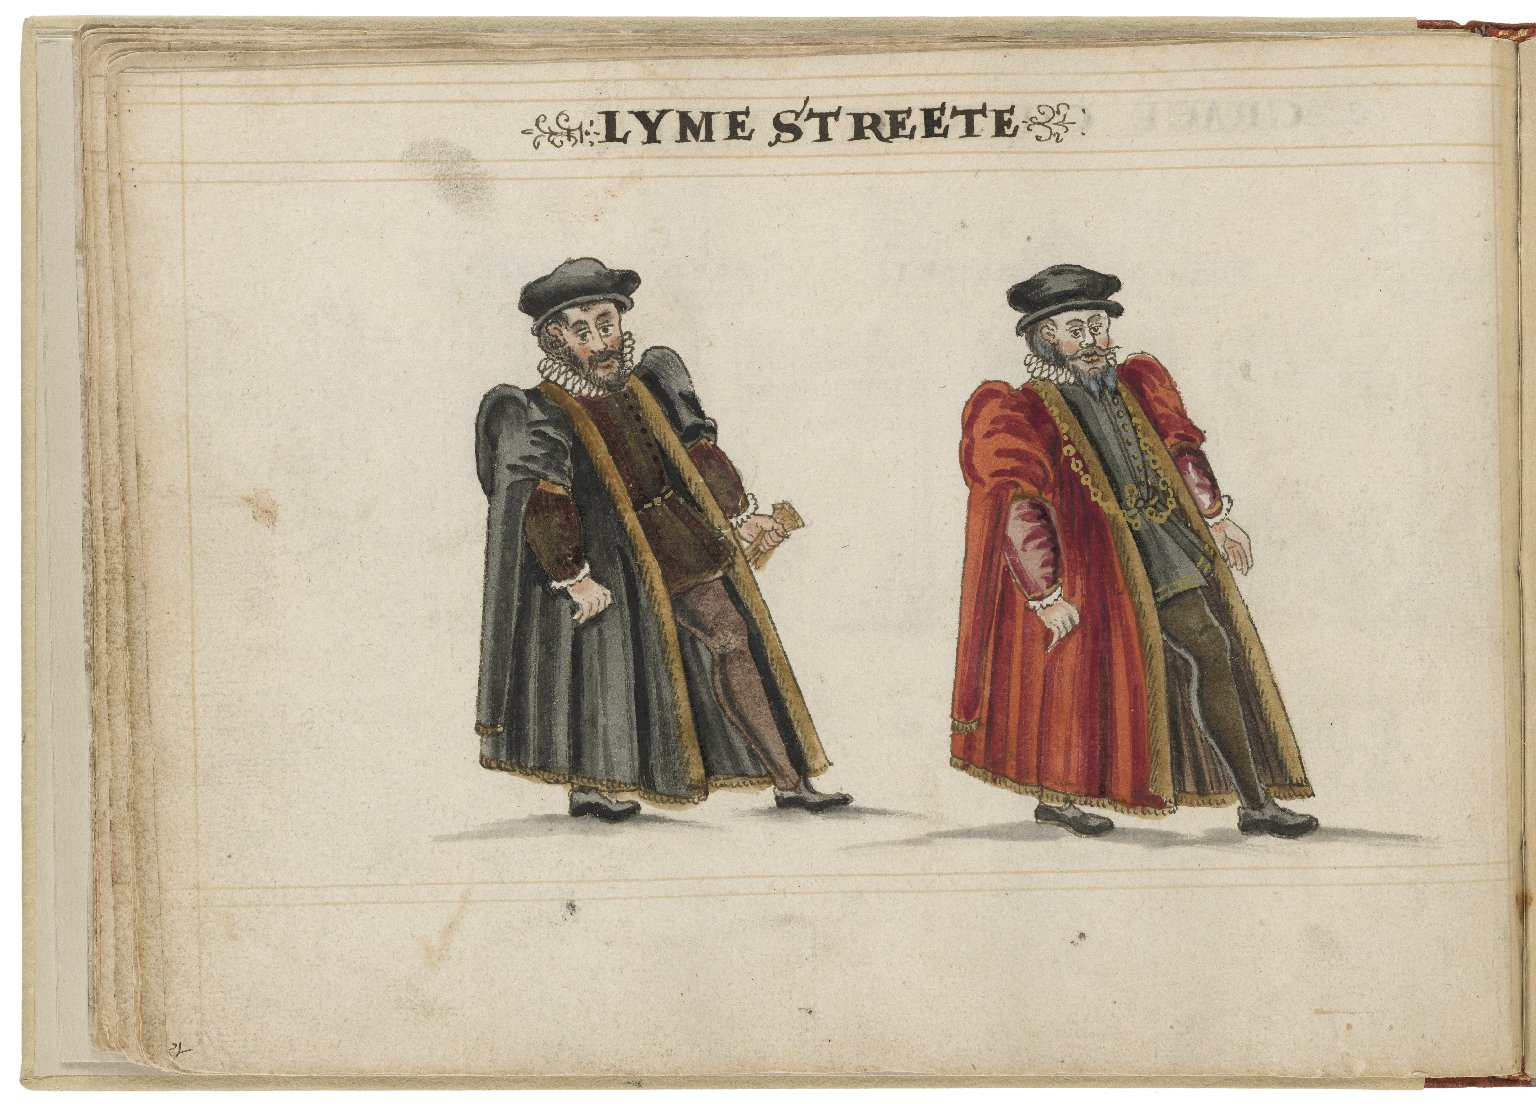 Watercolour painting of the alderman and deputy in charge of Lime Street Ward by Hugh Alley. Image courtesy of the Folger Digital Image Collection.